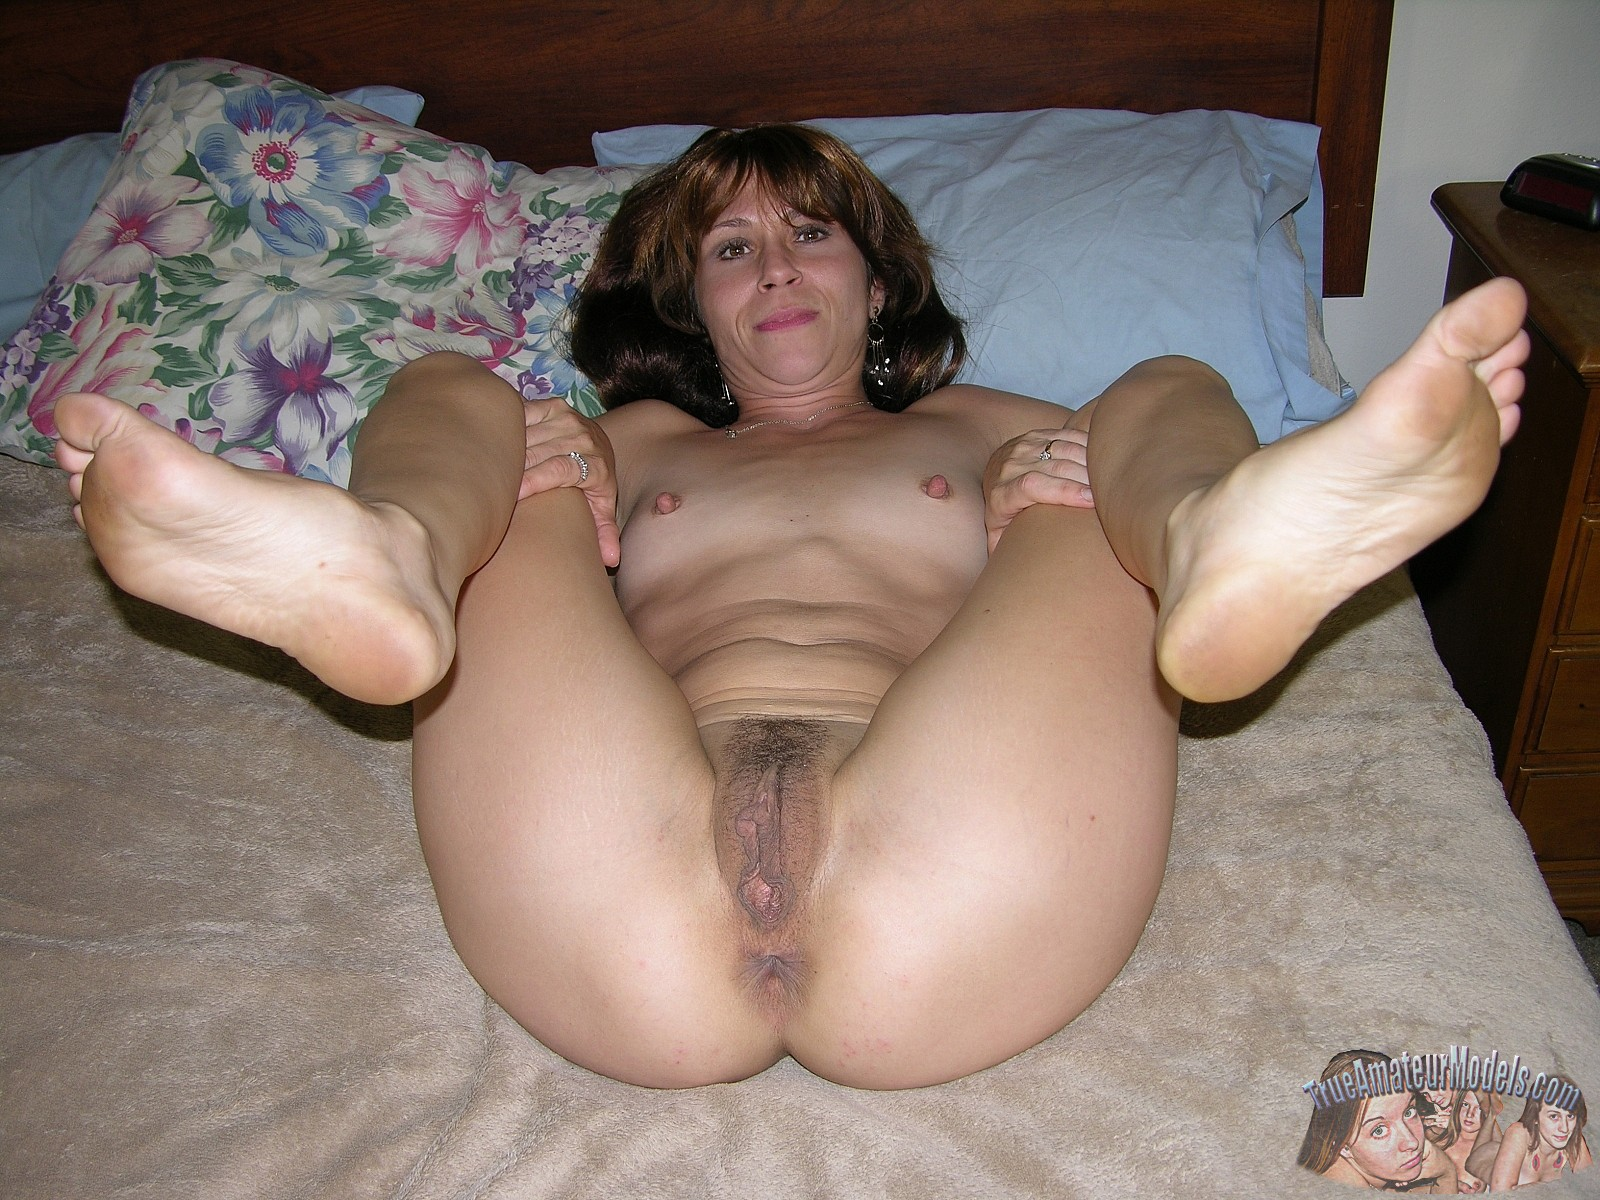 real wide milfs nude